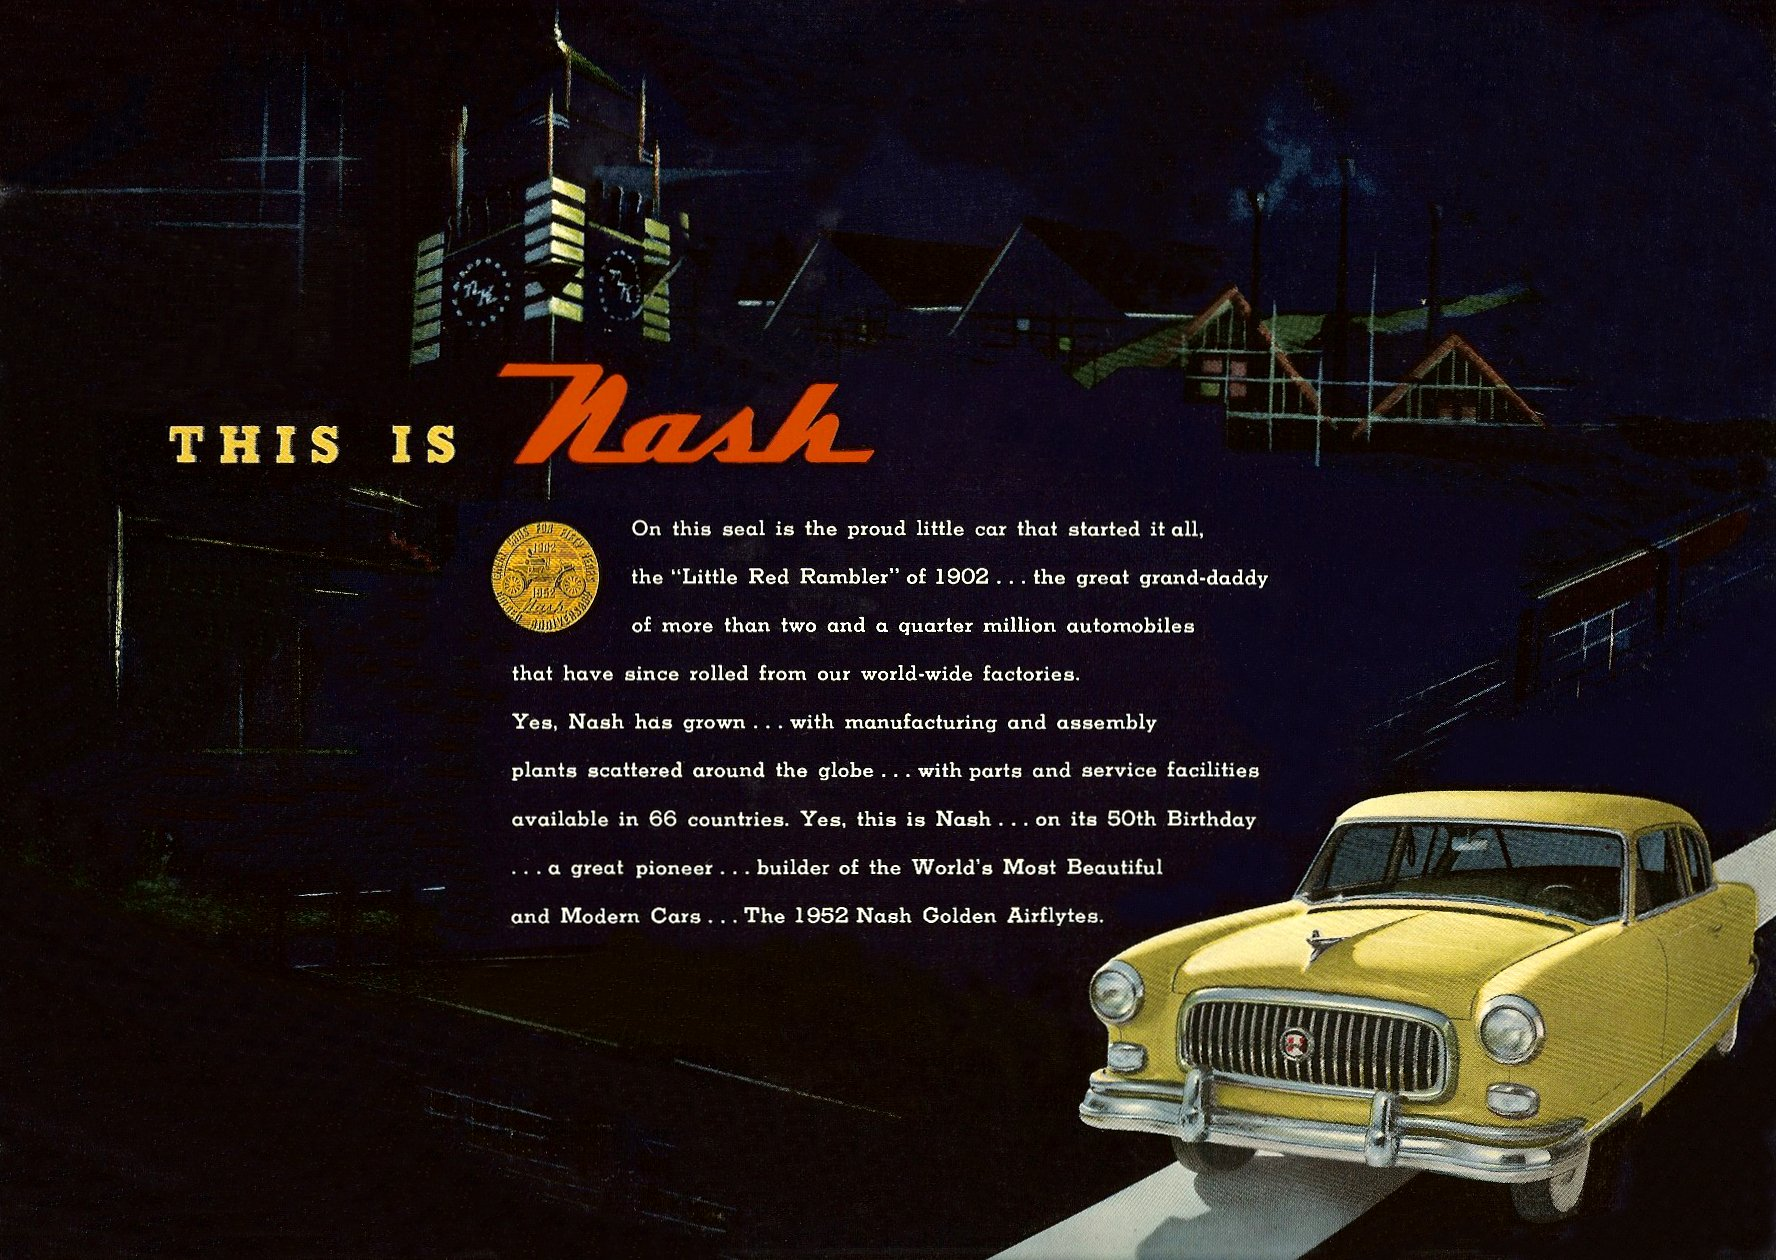 1952 The Golden Airflyte 1902-1952 Golden Anniversary By NASH Sales Catalog NSP-52-950-250M-3-52 Page 21, 12″x9″